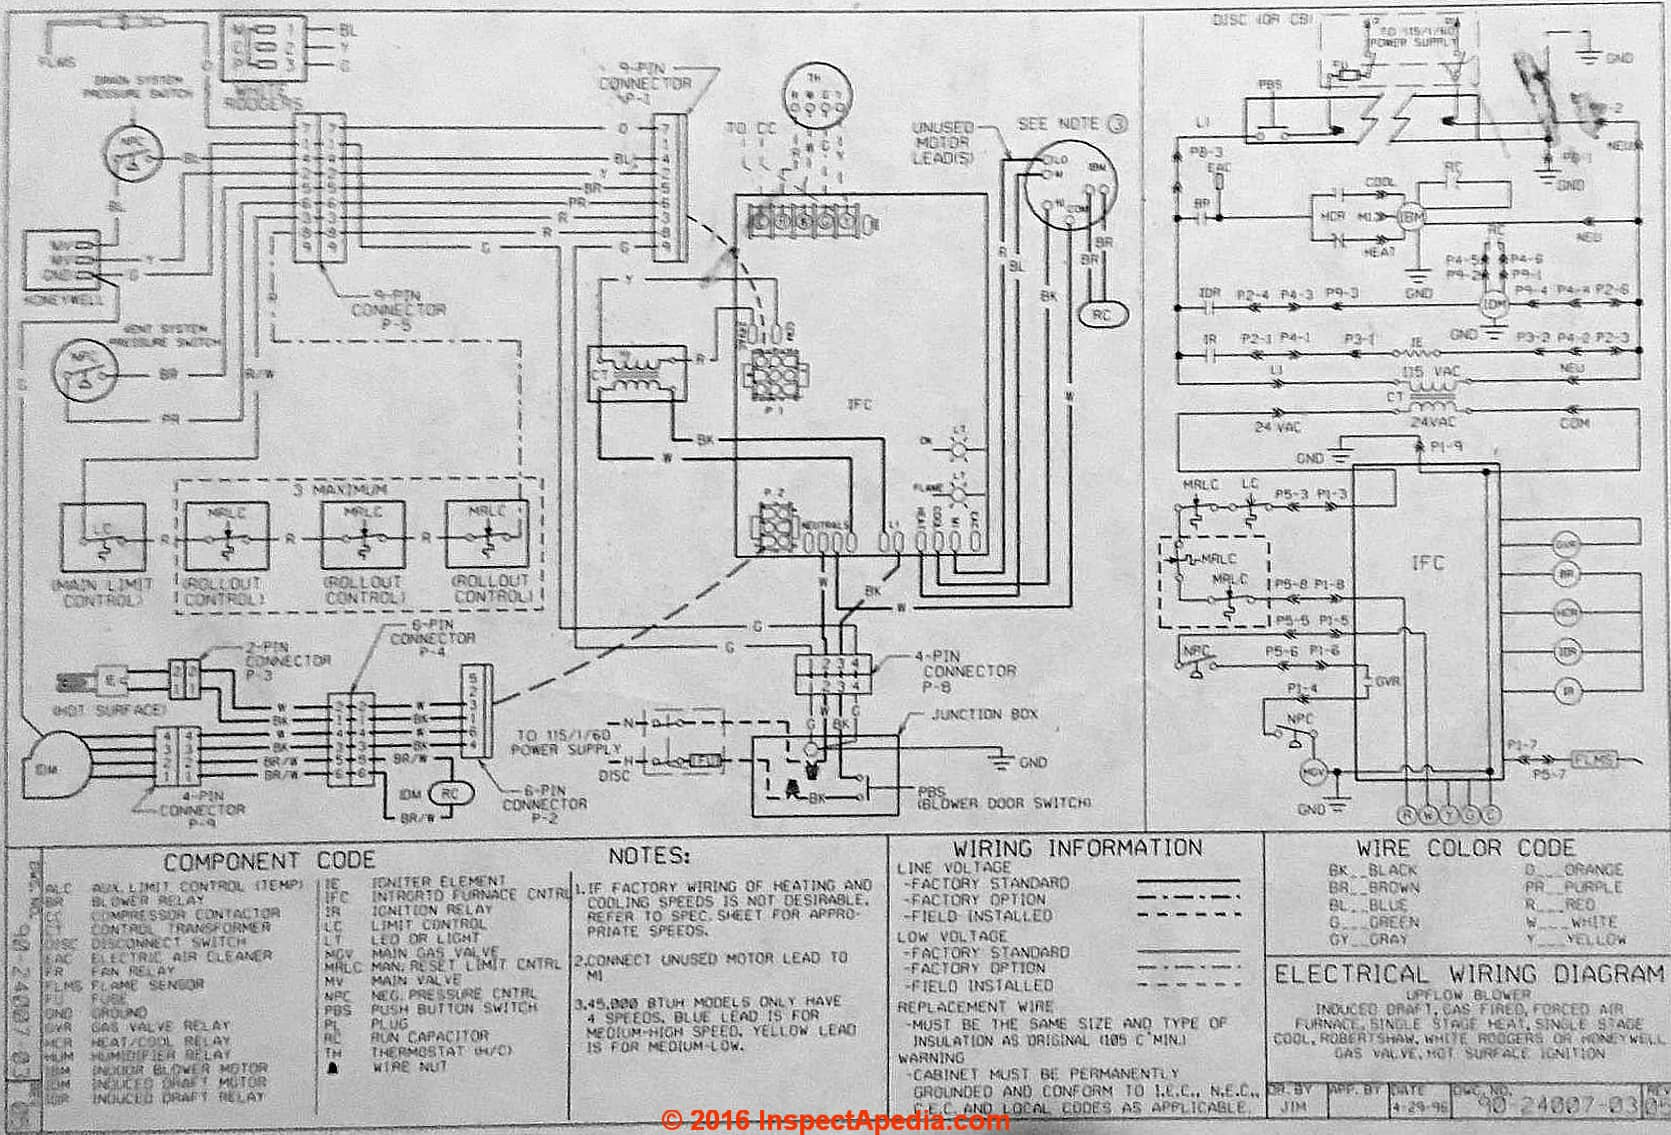 Rheem_AHU_Wiring_Diagram_IAP air conditioner heat pump faqs thermal zone heat pump wiring diagram at edmiracle.co